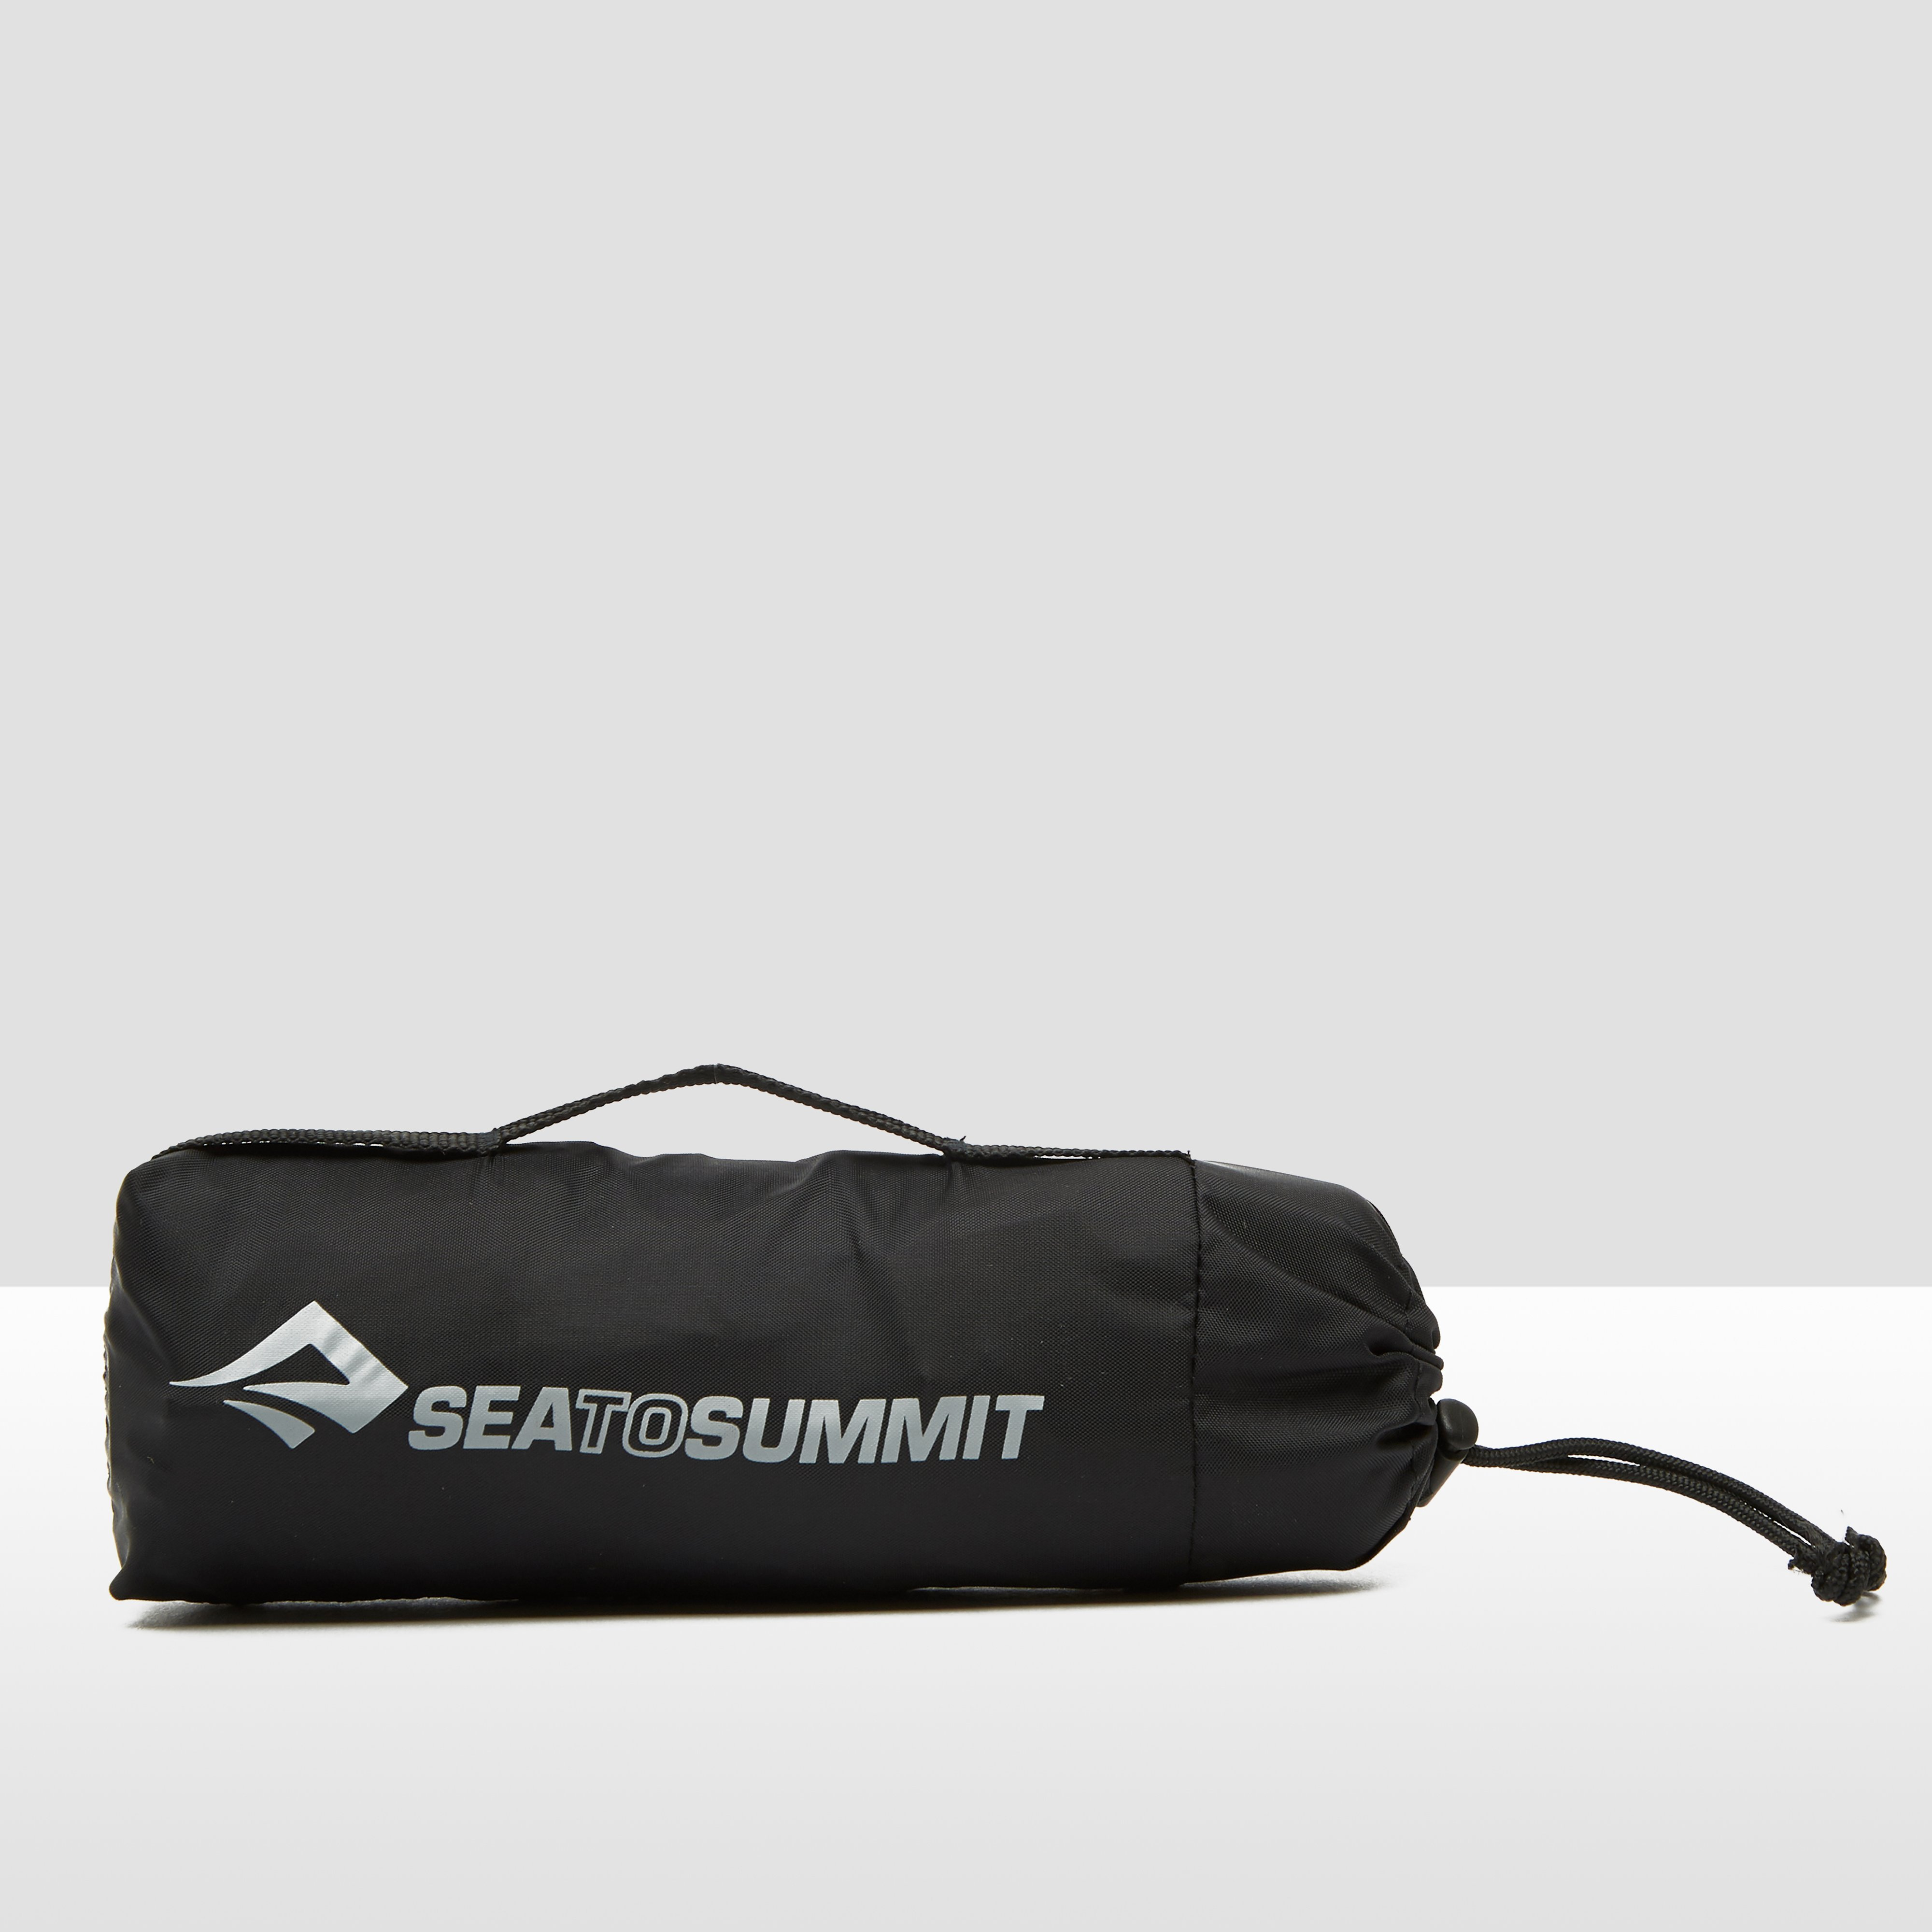 SEA TO SUMMIT REIS PARAPLU ZWART